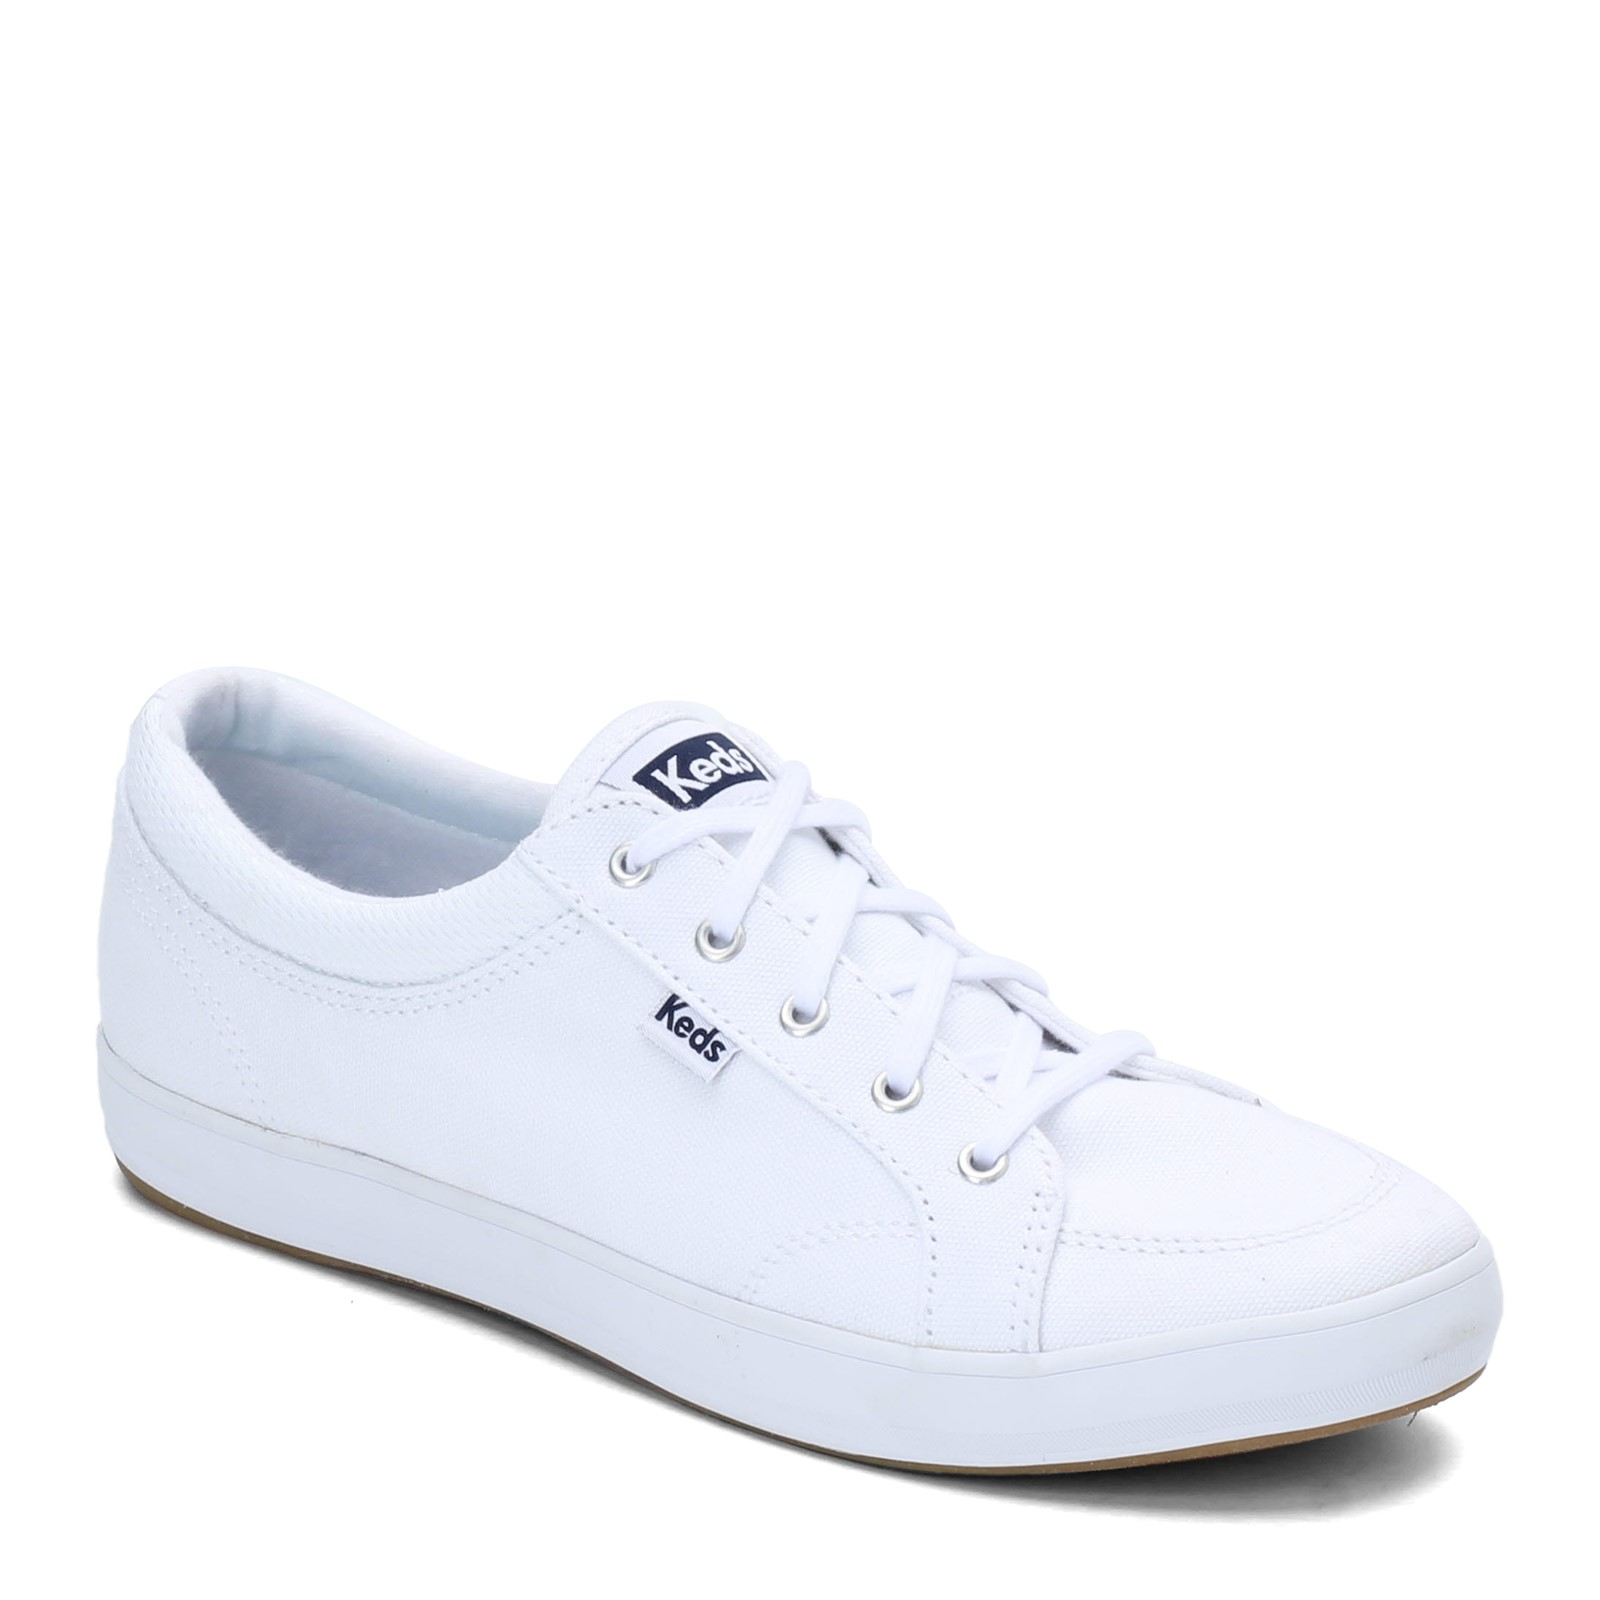 ed77f21c1cba Home; Women's Keds, Center Sneakers. Previous. default view ...